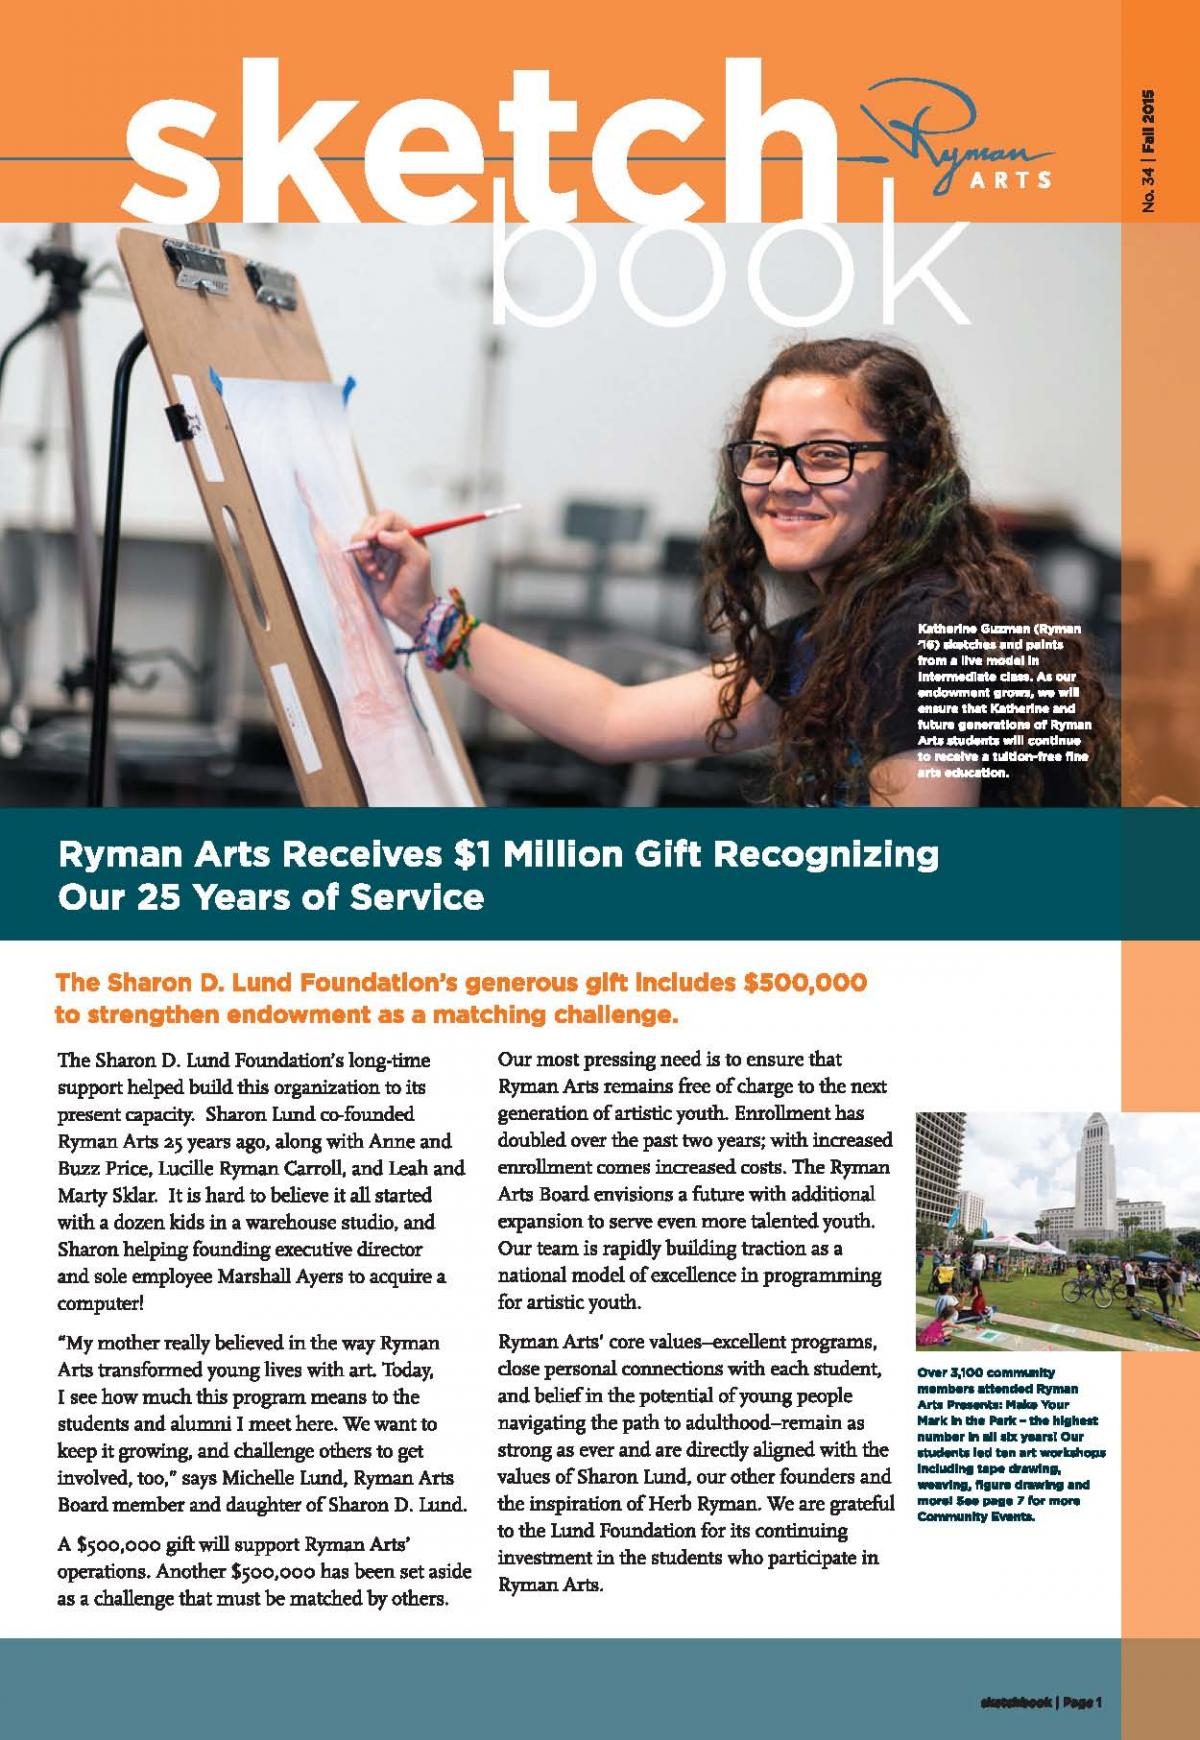 Ryman Arts Sketchbook Number 34, Spring 2015: Ryman Arts Receives $1 Million Gift Recognizing Our 25 Years of Service